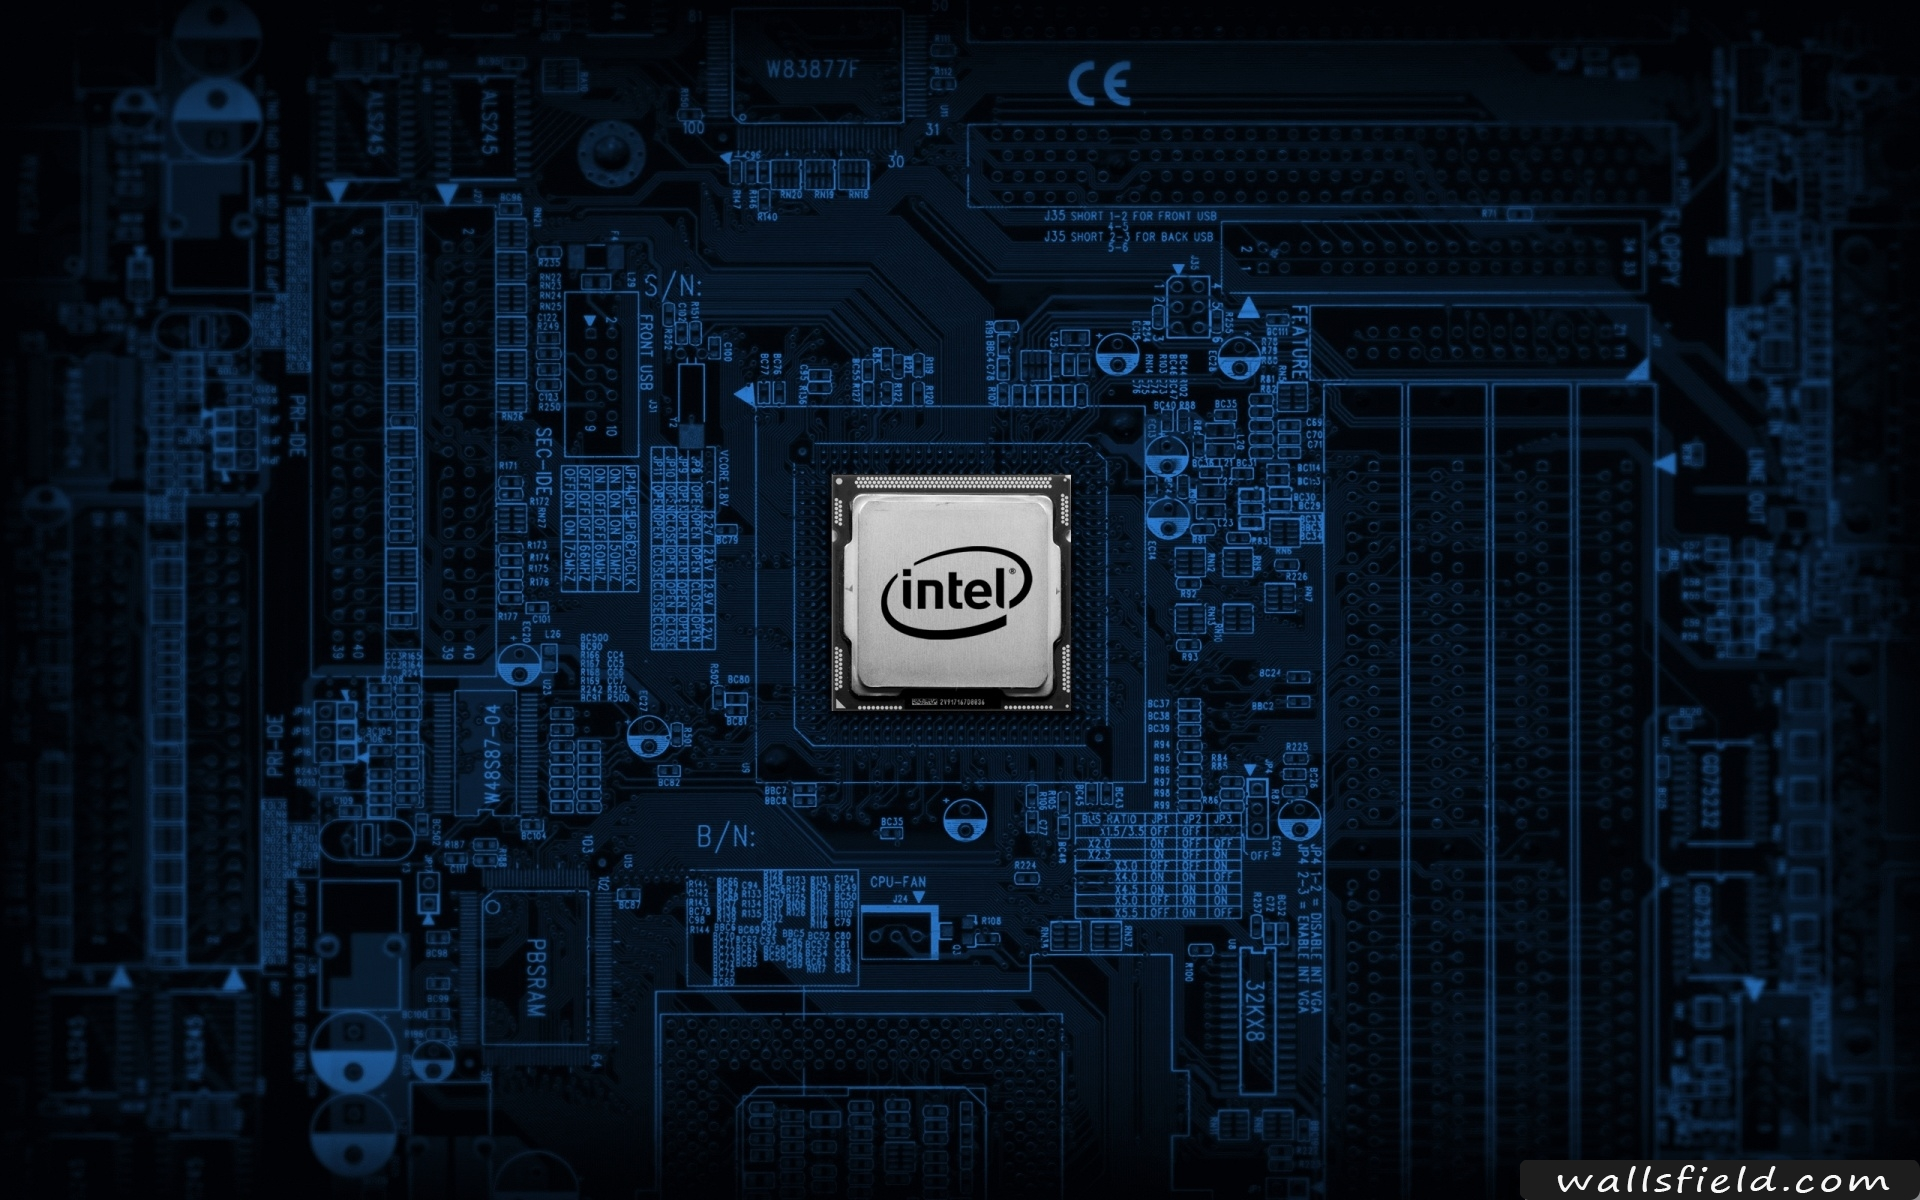 Intel Motherboard   Wallsfieldcom HD Wallpapers 1920x1200